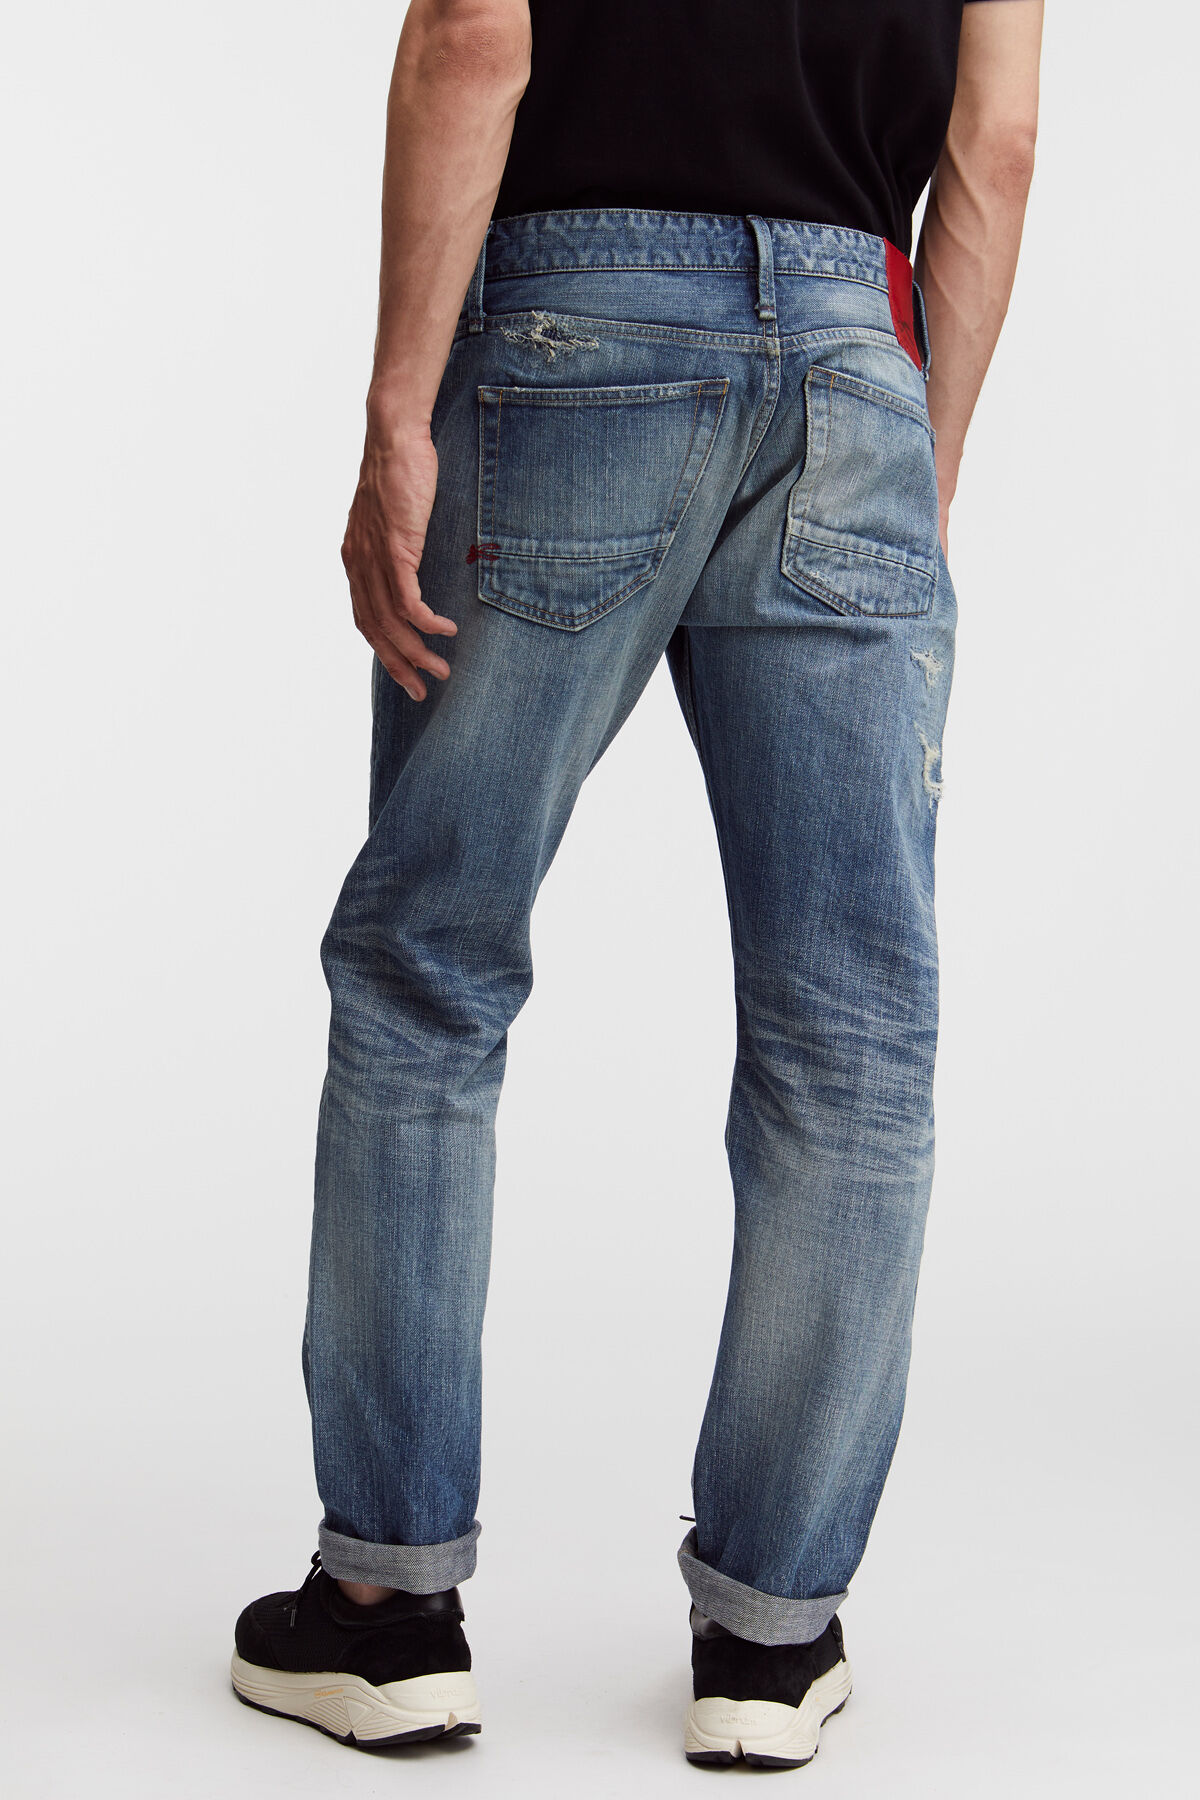 FORGE Made in Japan Selvedge Denim - Wide Fit